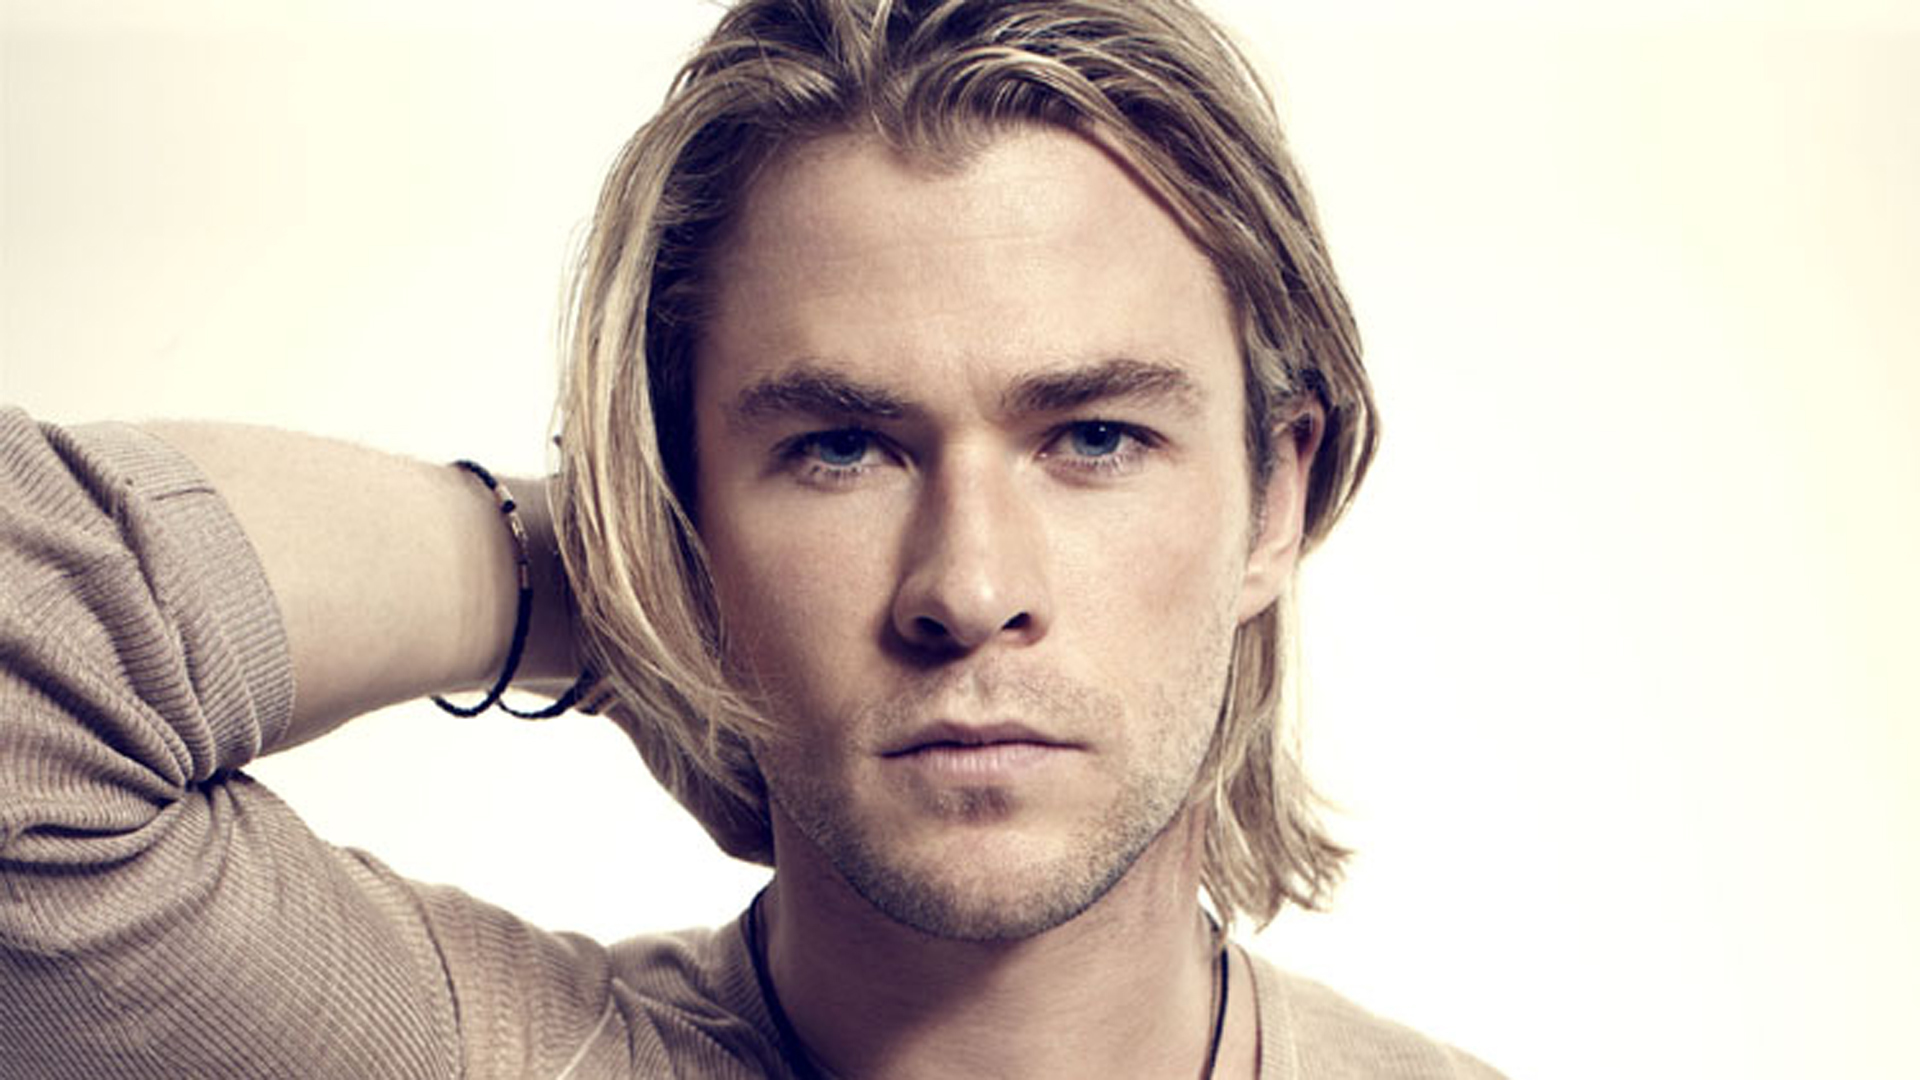 Chris Hemsworth wallpapers High Quality Resolution Download